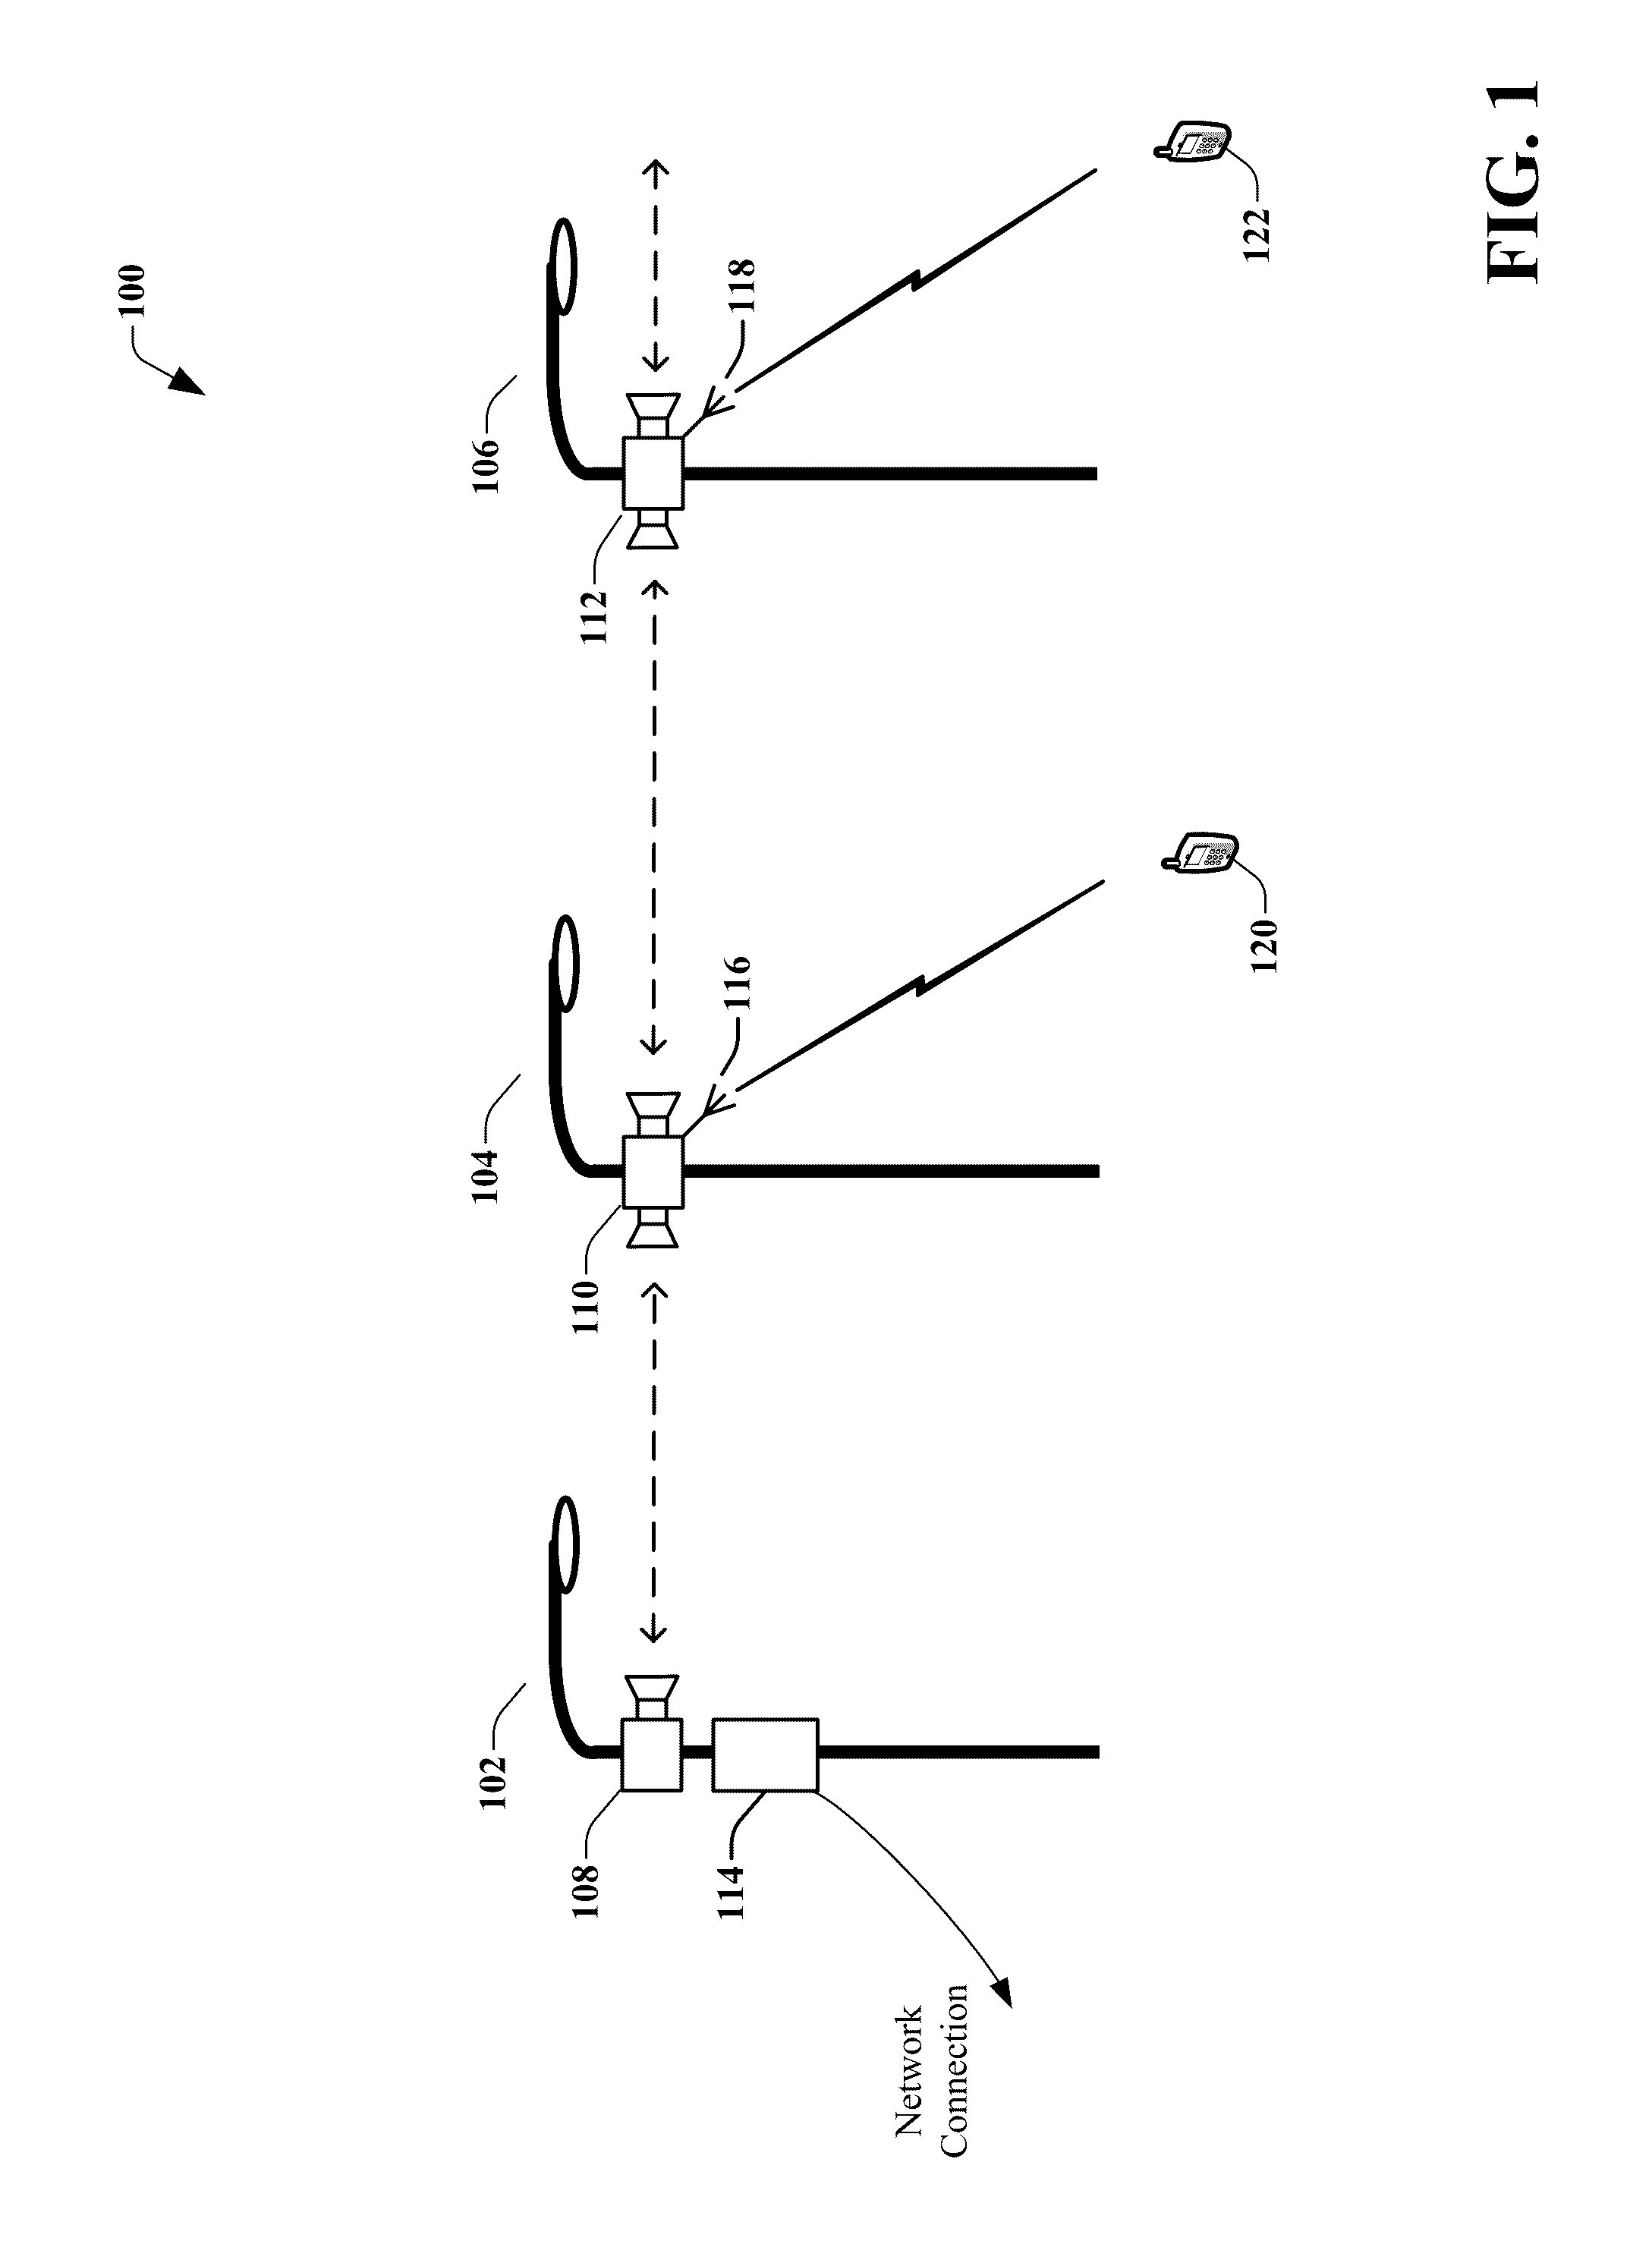 US9525524B2 - Remote distributed antenna system - Google Patents